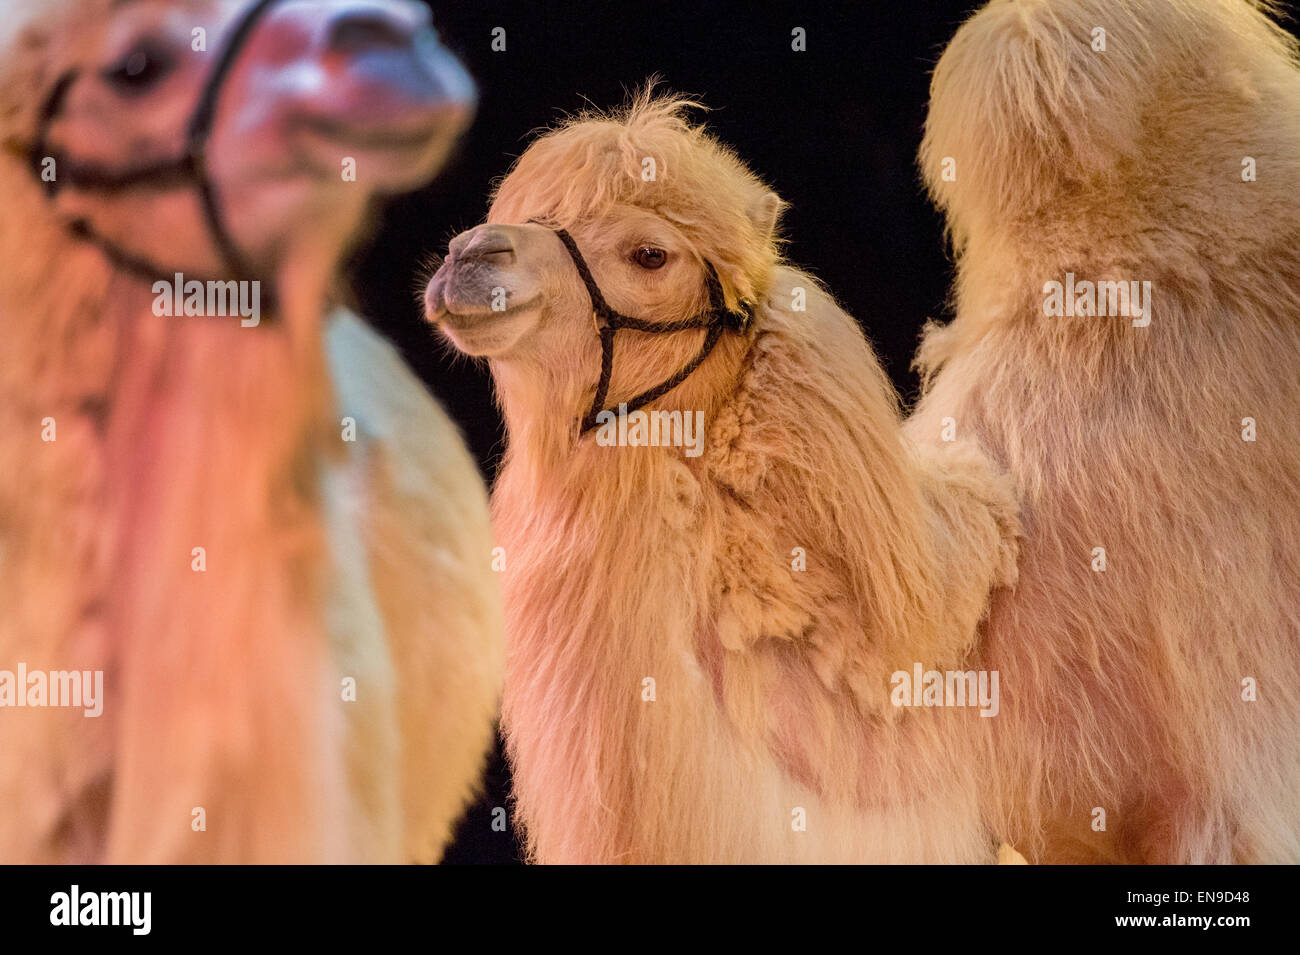 Two camels - Stock Image